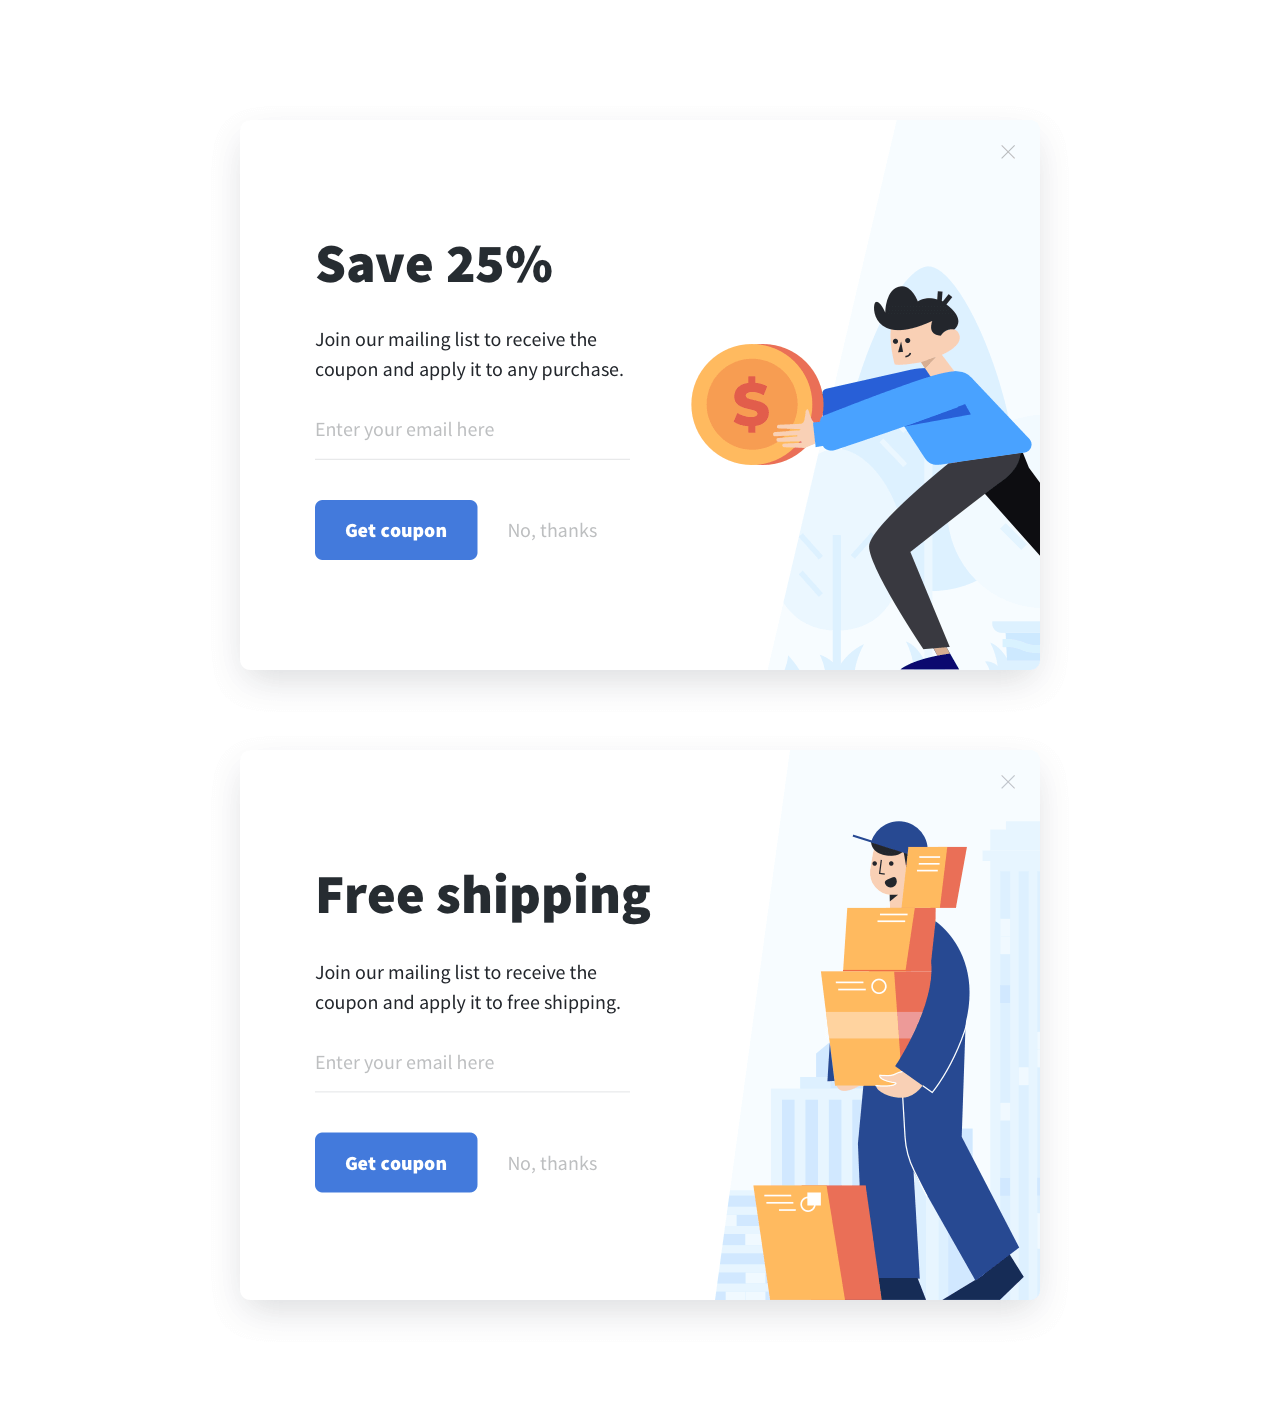 Email subscription form A/B test example